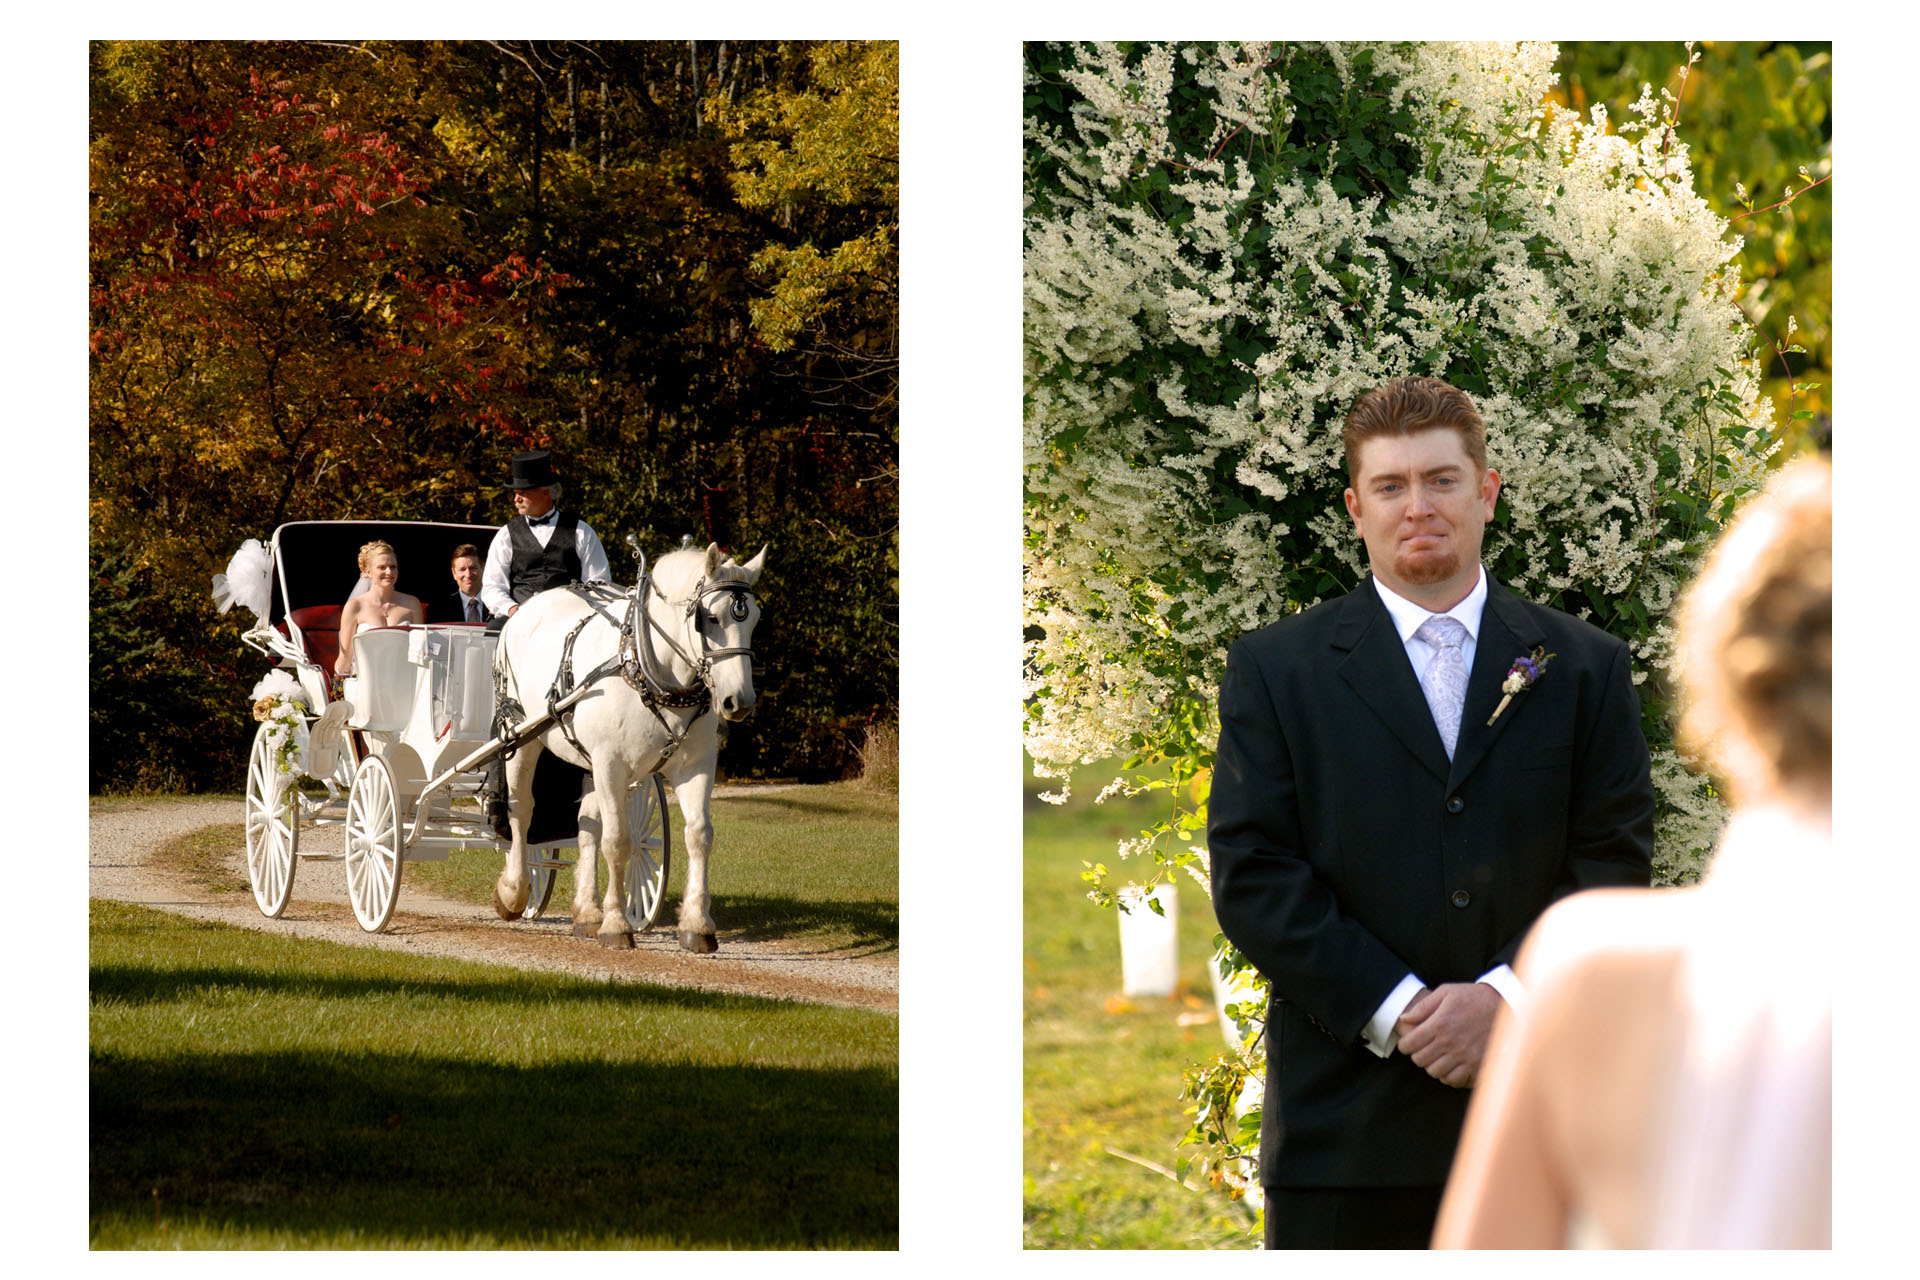 Favorite Michigan backyard wedding photography features photojournalist photos of the bride and her father pulling up in a horse and carriage for their wedding in metro Detroit, Michigan featuring their lovely backyard garden wedding in fall..